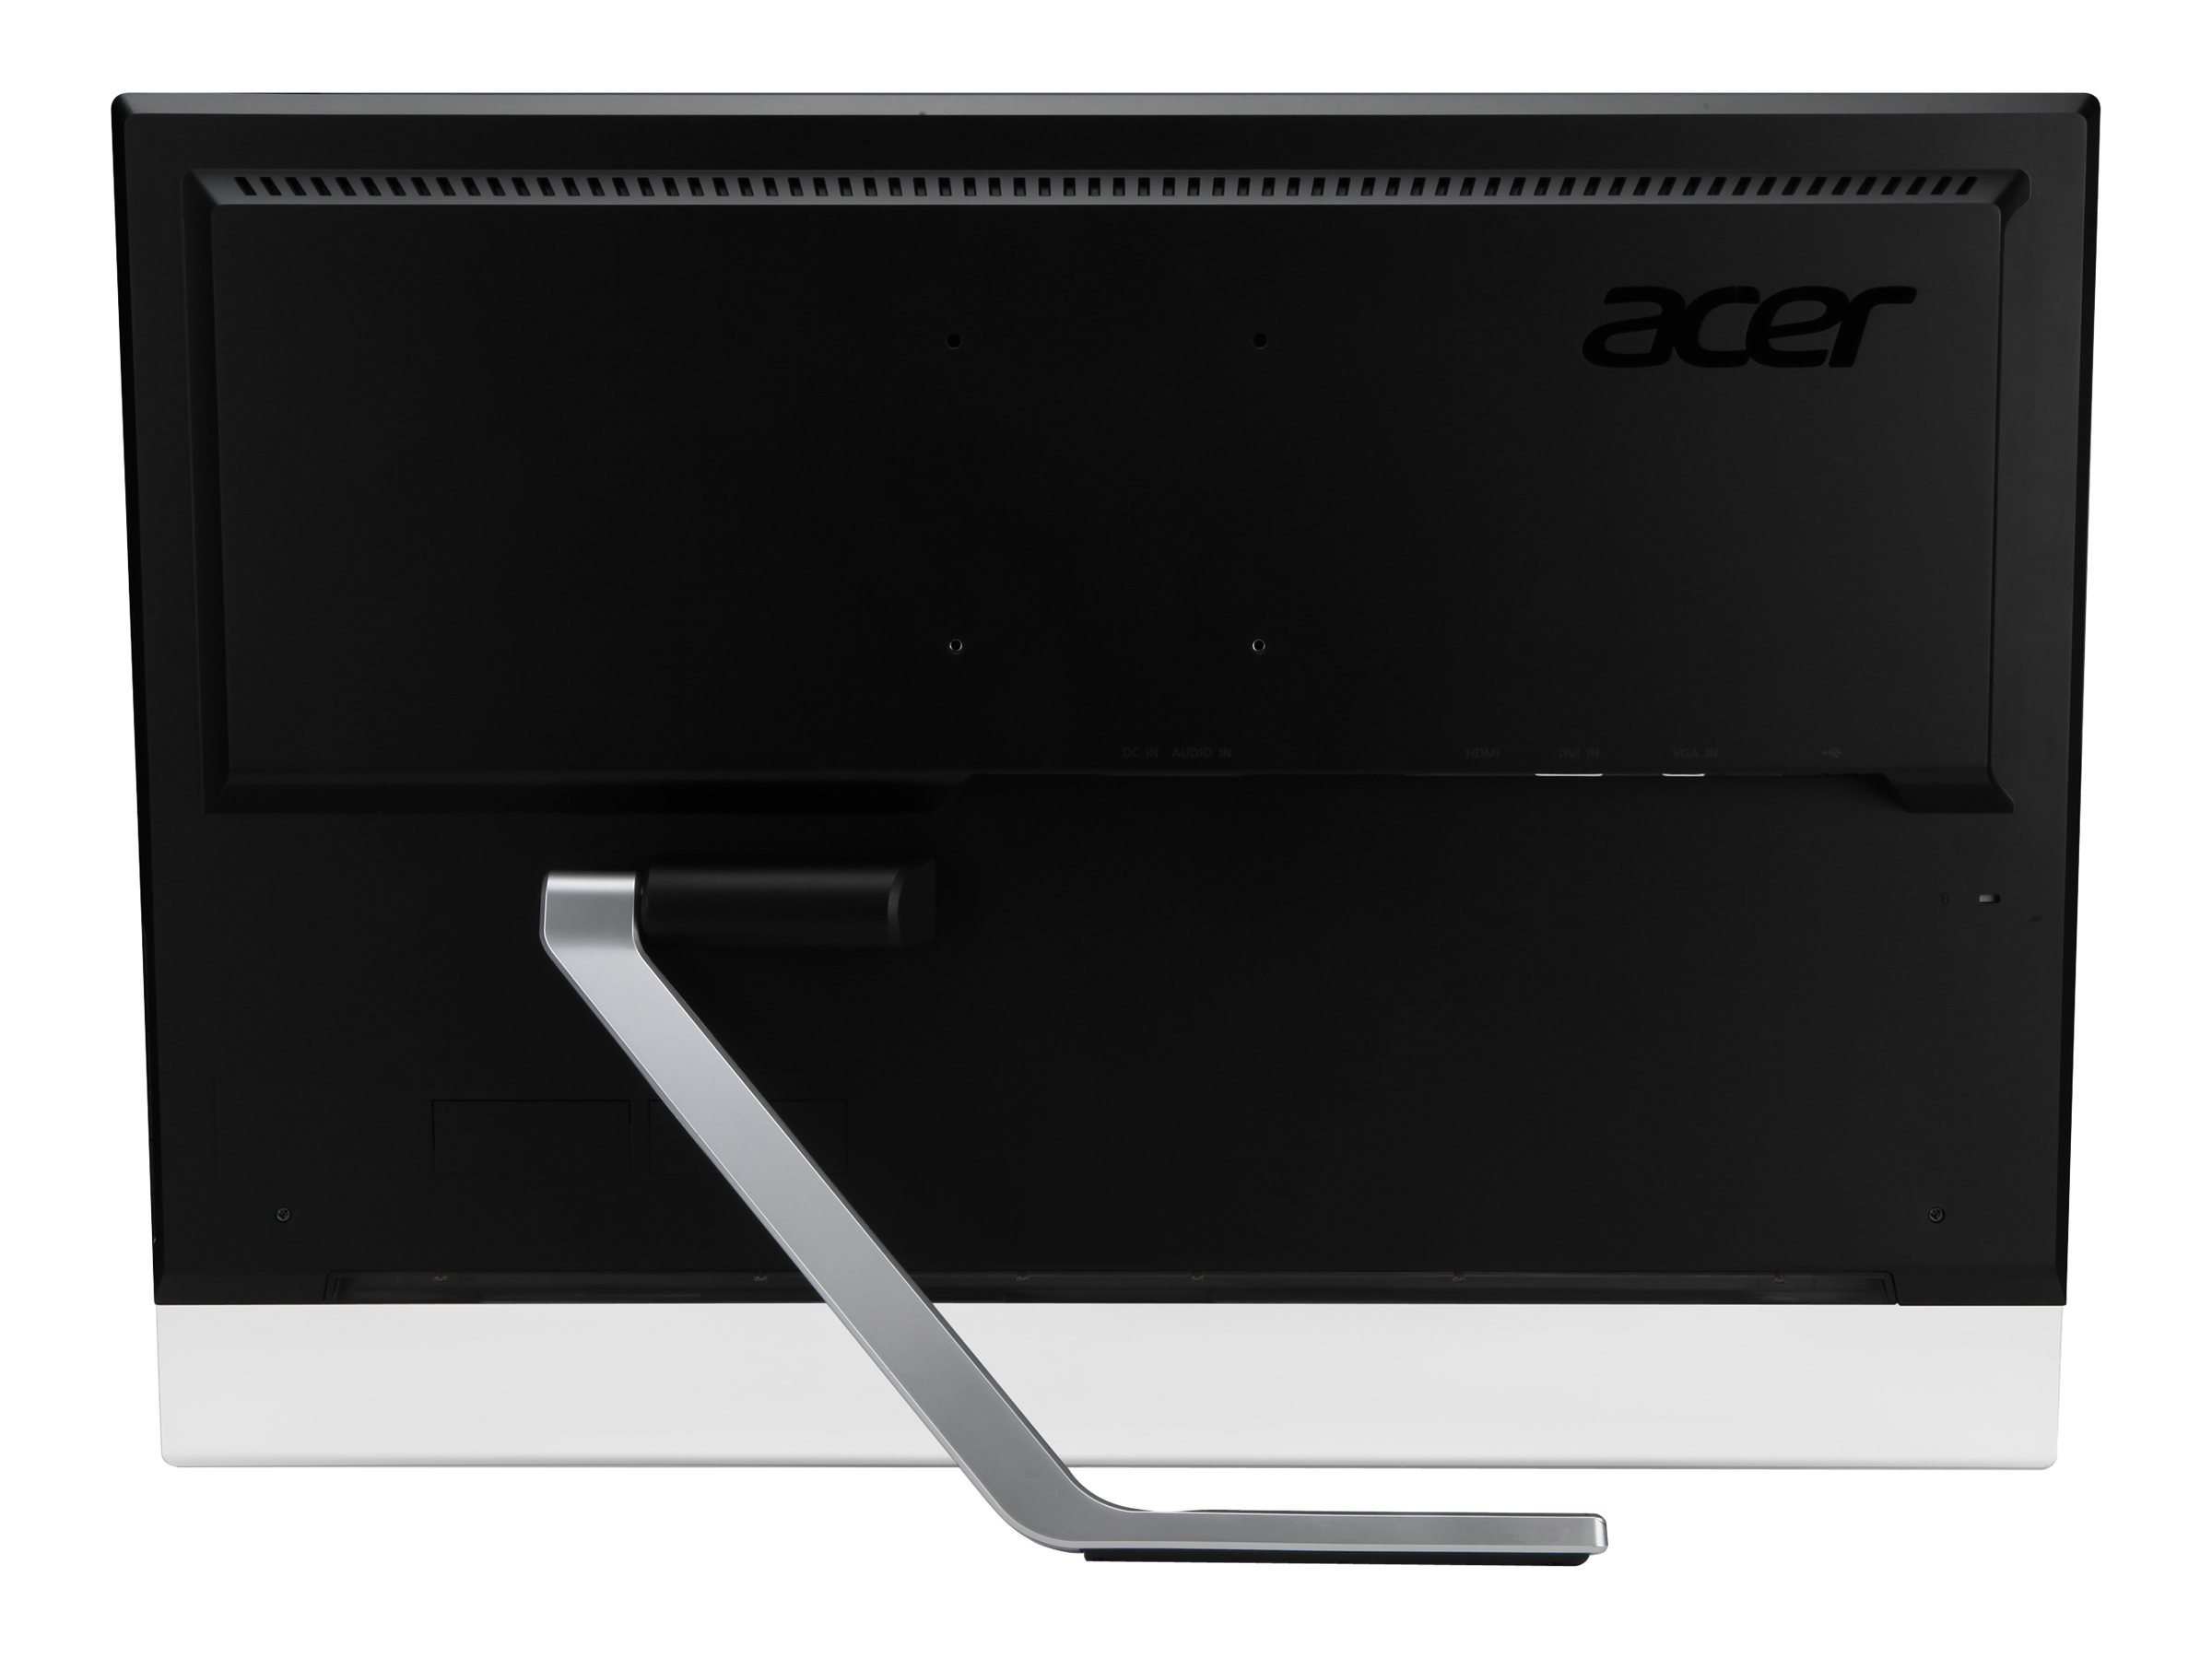 Acer T272HL bmjjz 27-Inch (1920 x 1080) Touch Screen Widescreen Monitor by Acer (Image #5)